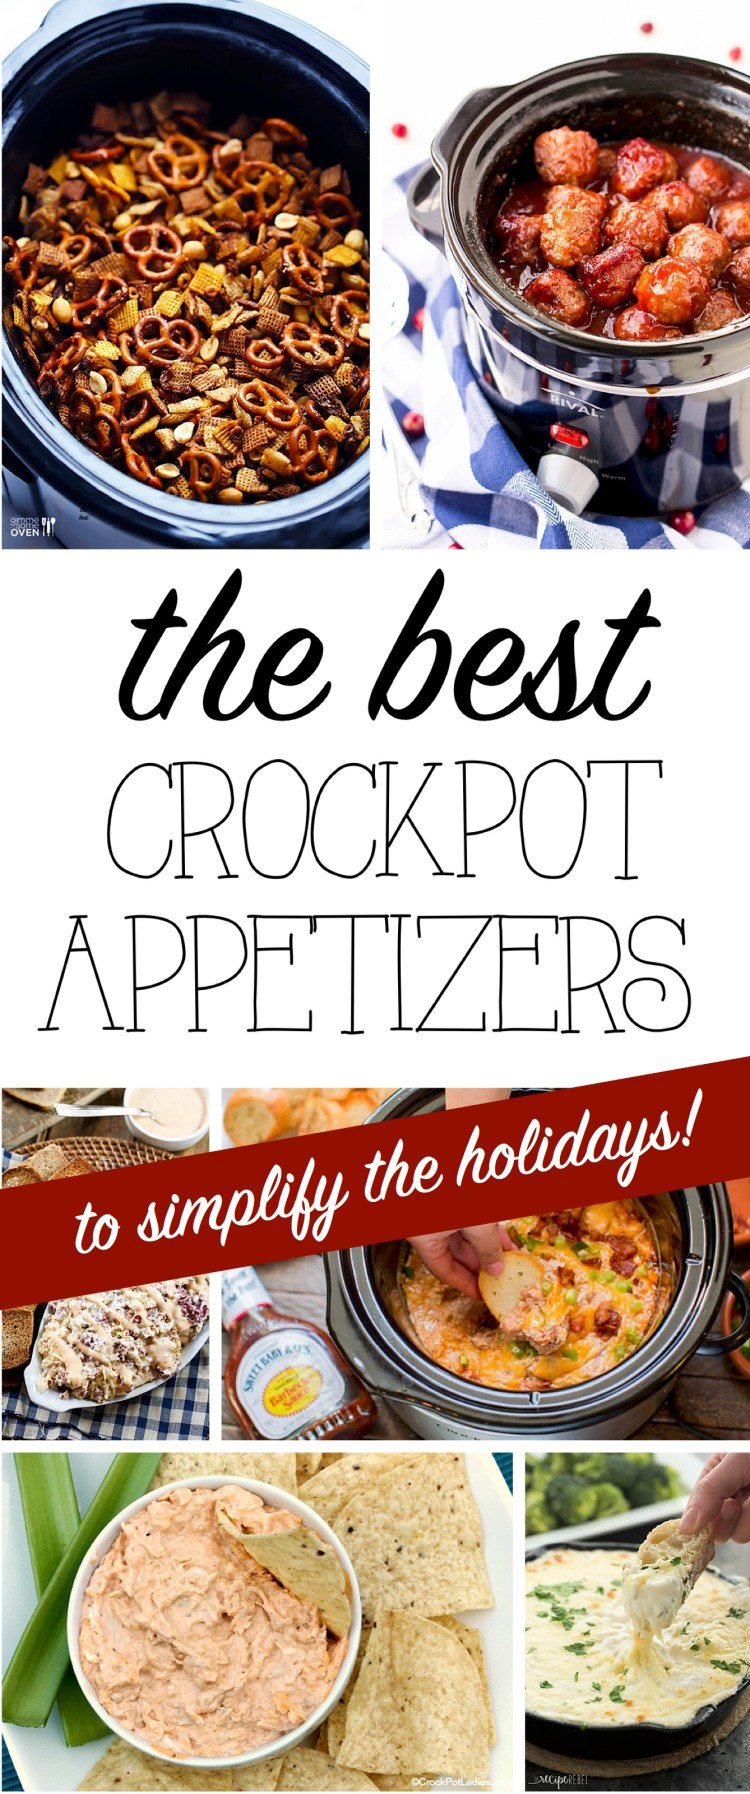 The best crockpot appetizers to simplify your holidays six clever delicious holiday appetizers all easy recipes for your slowcooker forumfinder Choice Image